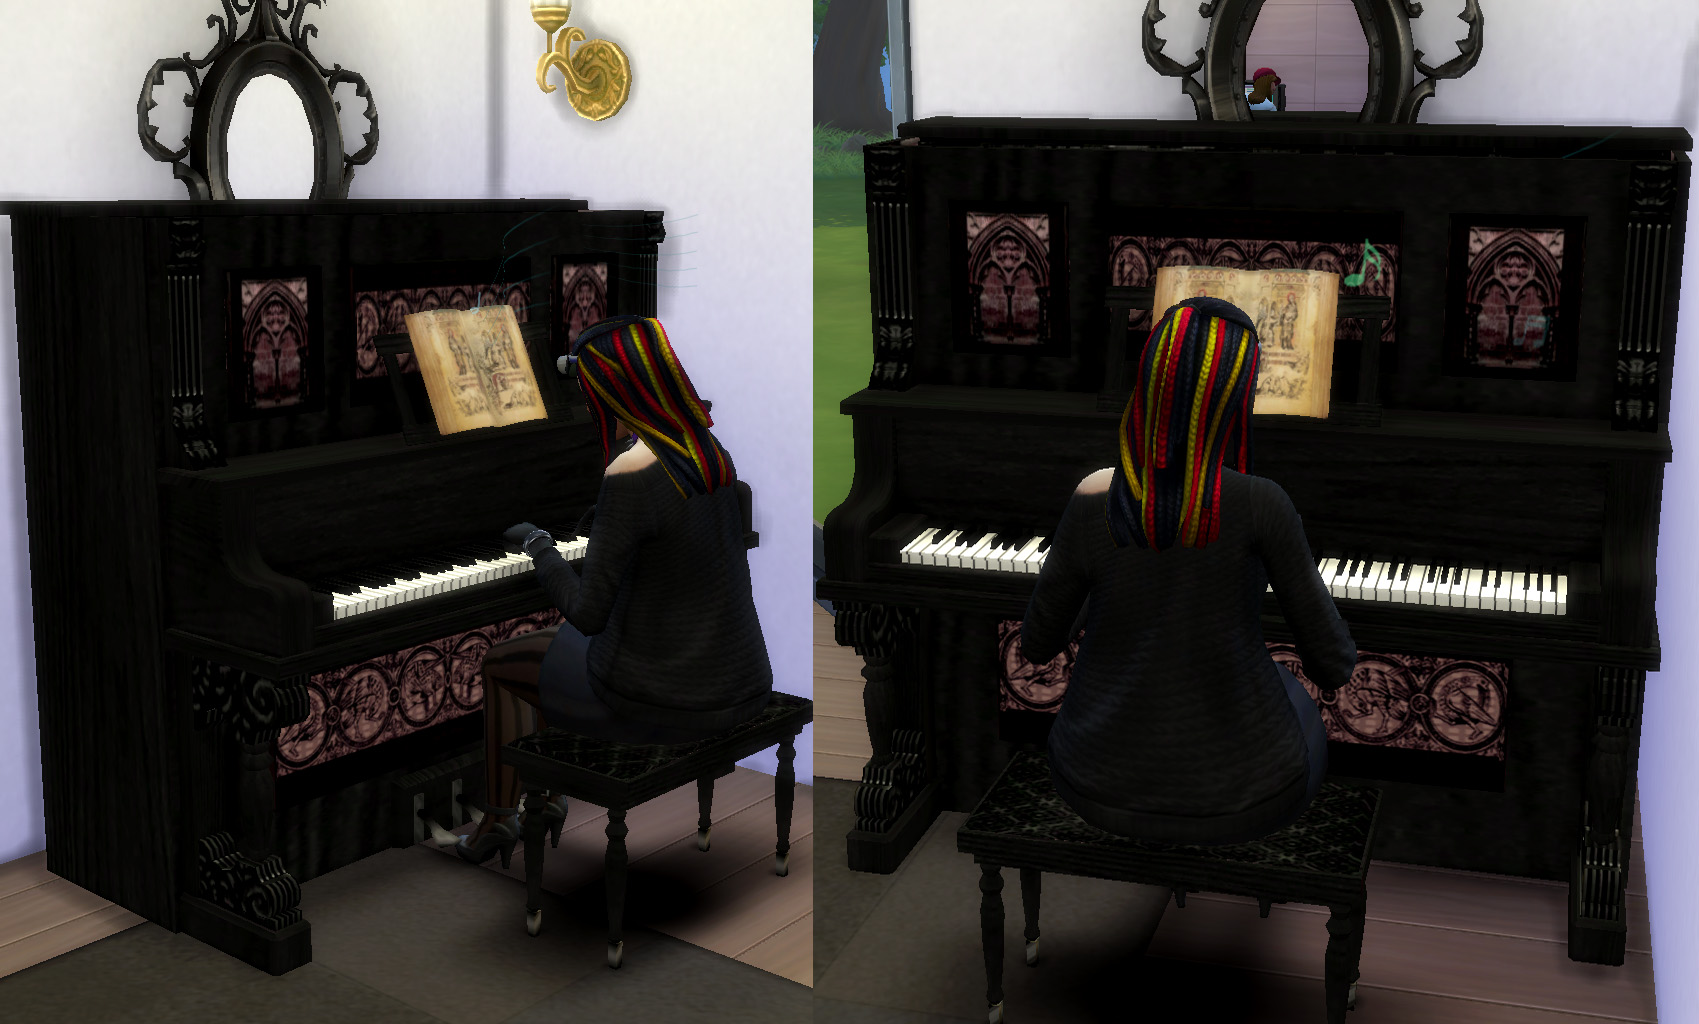 The Sims 2 Upright Saloon Piano by Esmeralda